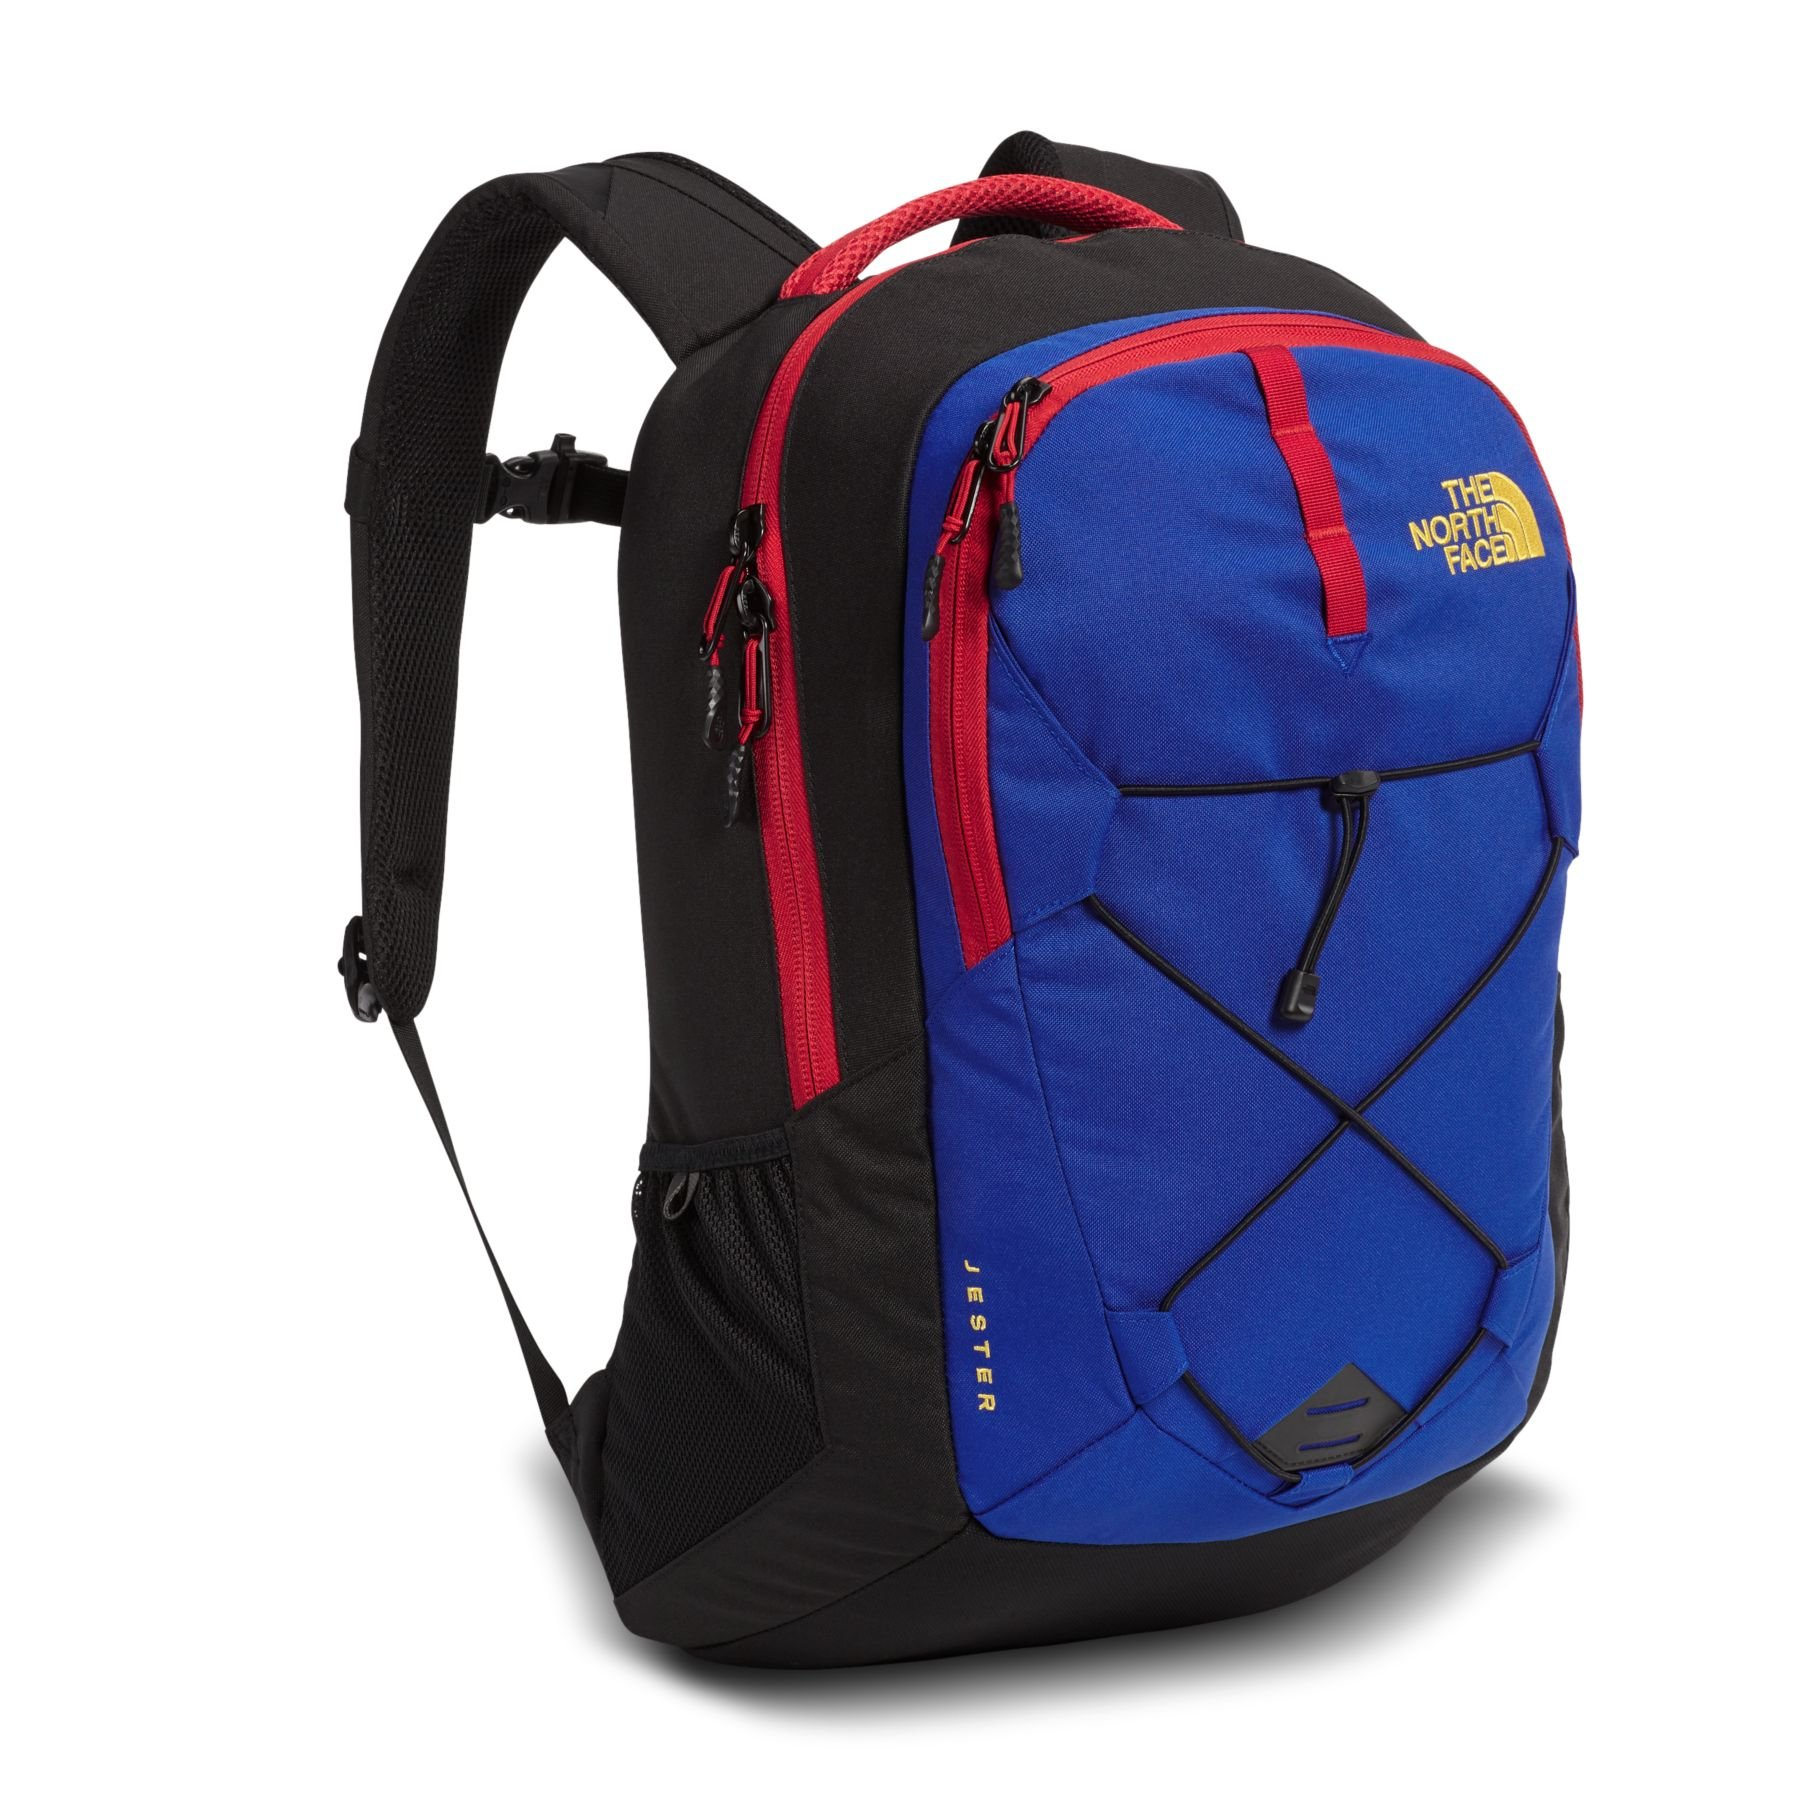 The North Face Jester Backpack - Bright Cobalt Blue & TNF Black - OS (Past Season)